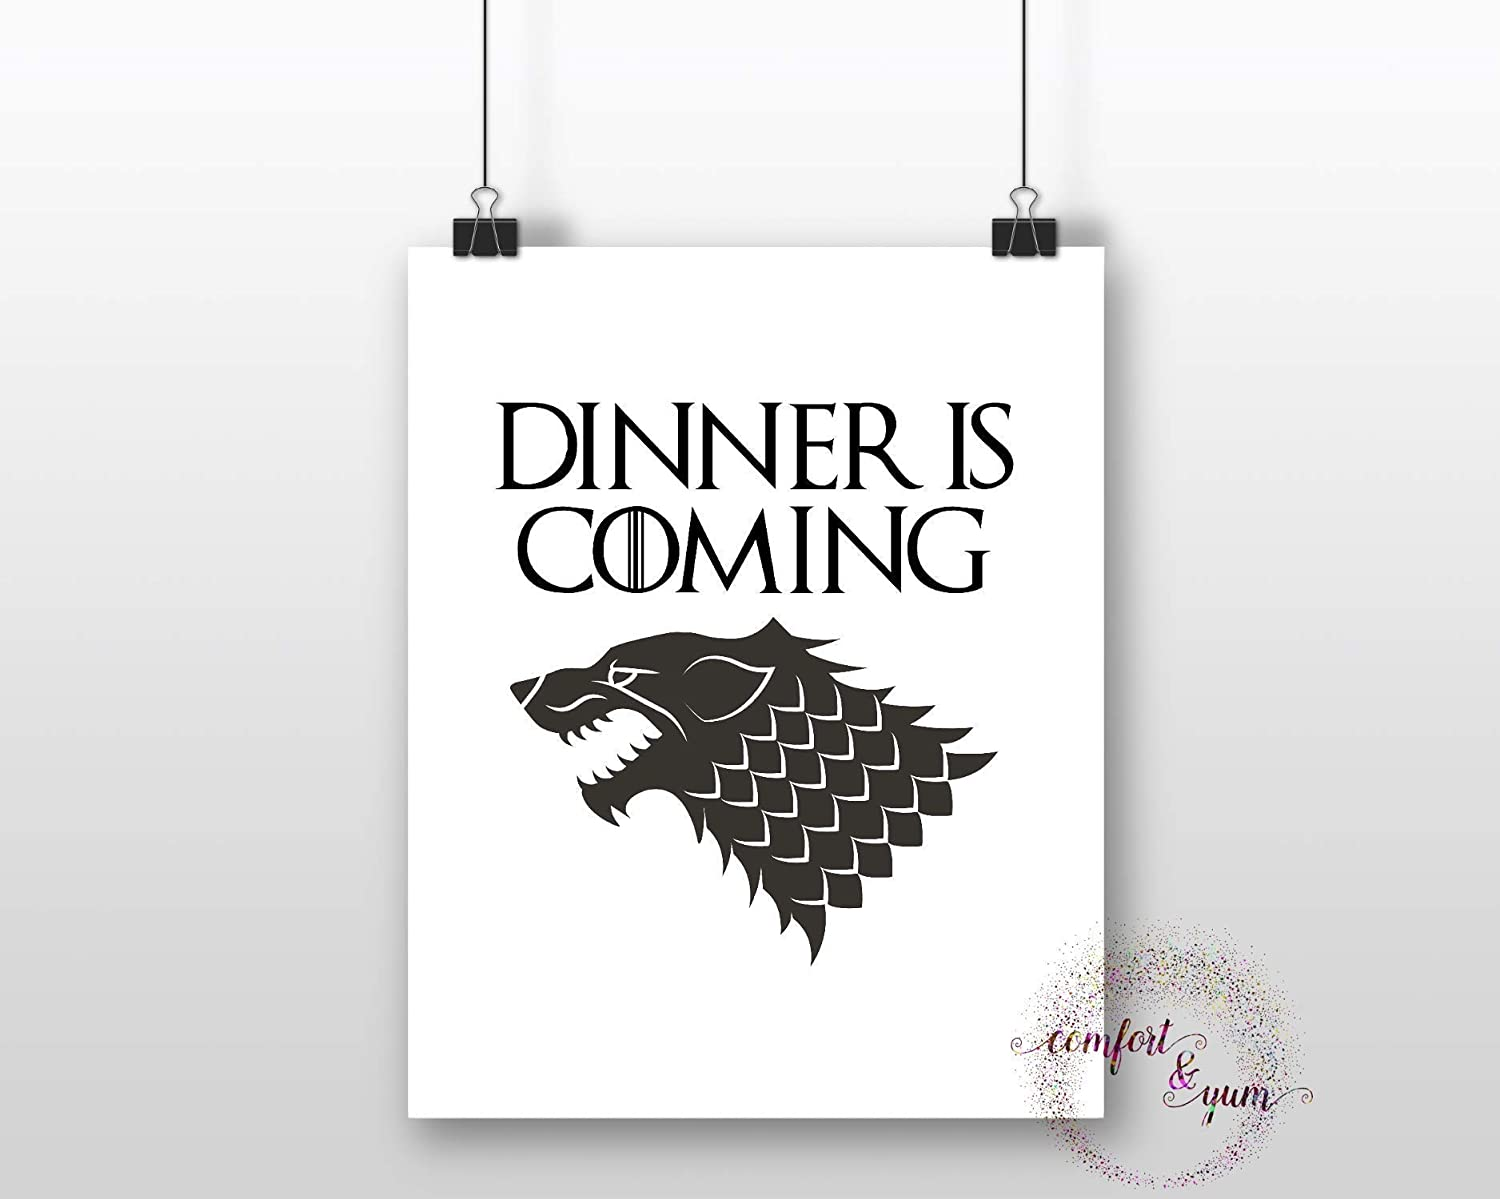 Dinner is Coming with Wolf Insignia Game of Thrones House Stark Instant Pot Instapot Pressure Cooker Crock Pot Decal Sticker Pun